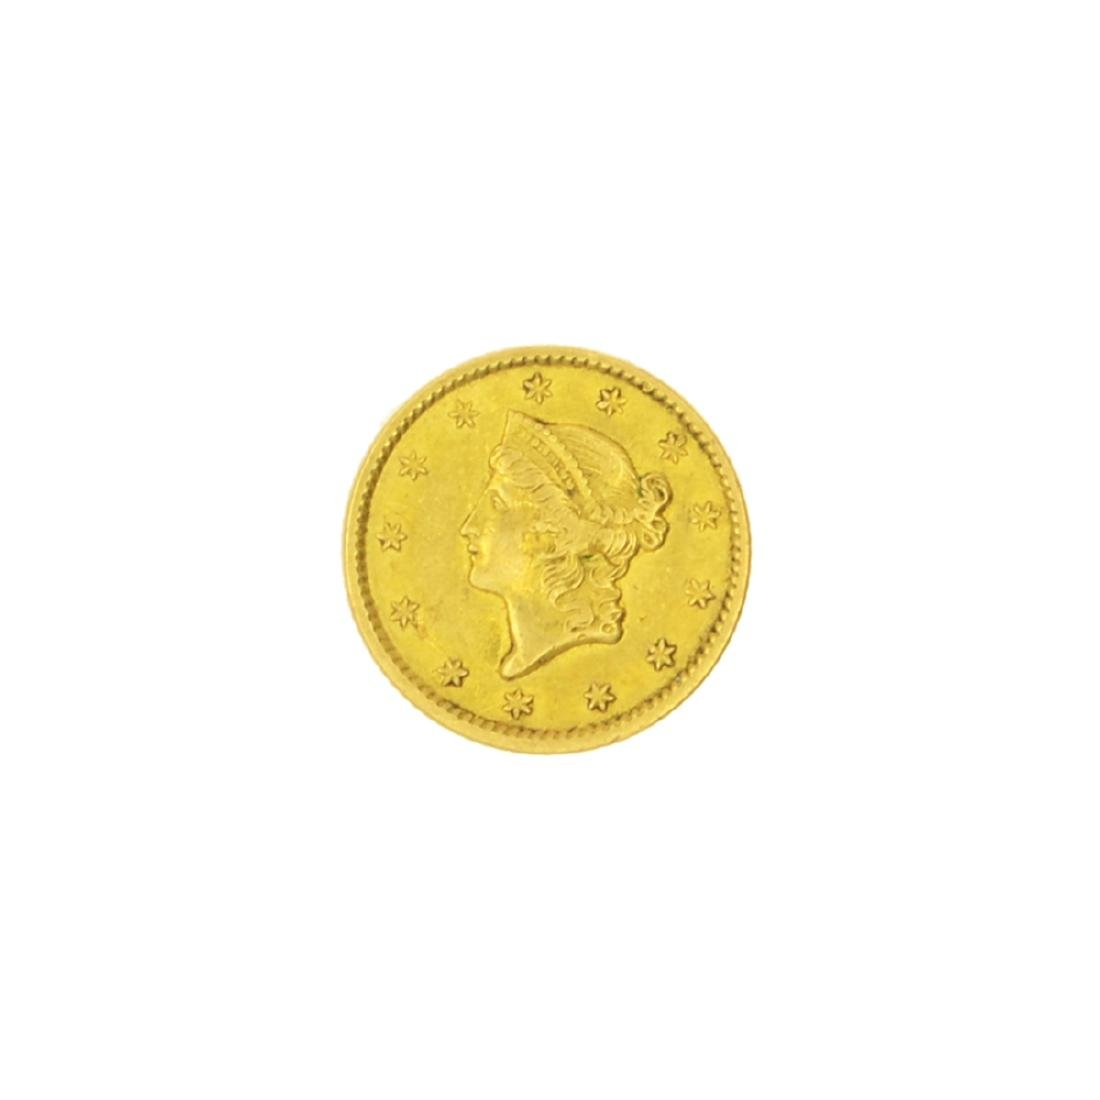 Very Rare 1850 $1 U.S. Liberty Head Gold Coin Great